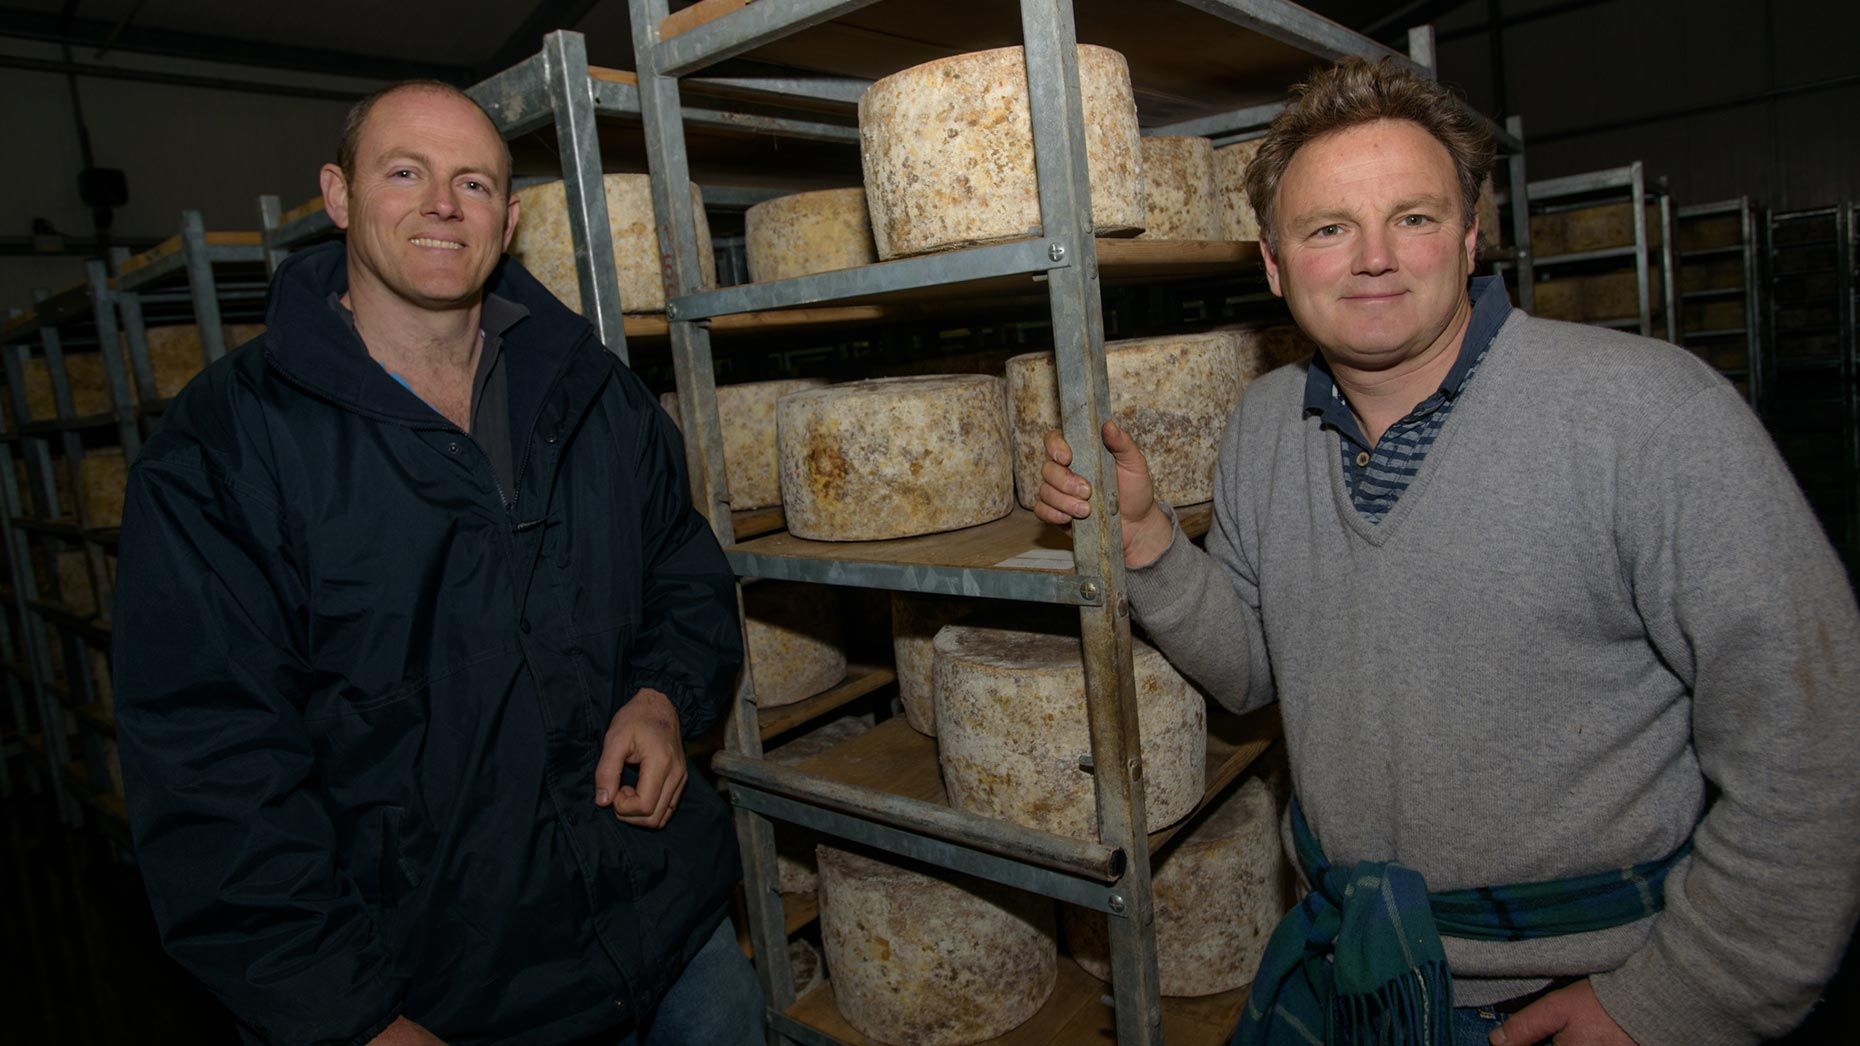 Bothers, Tim and Simon Jones in Lincolnshire Poacher's Cheese cellar. Photo: Steve Smailes for The Lincolnite